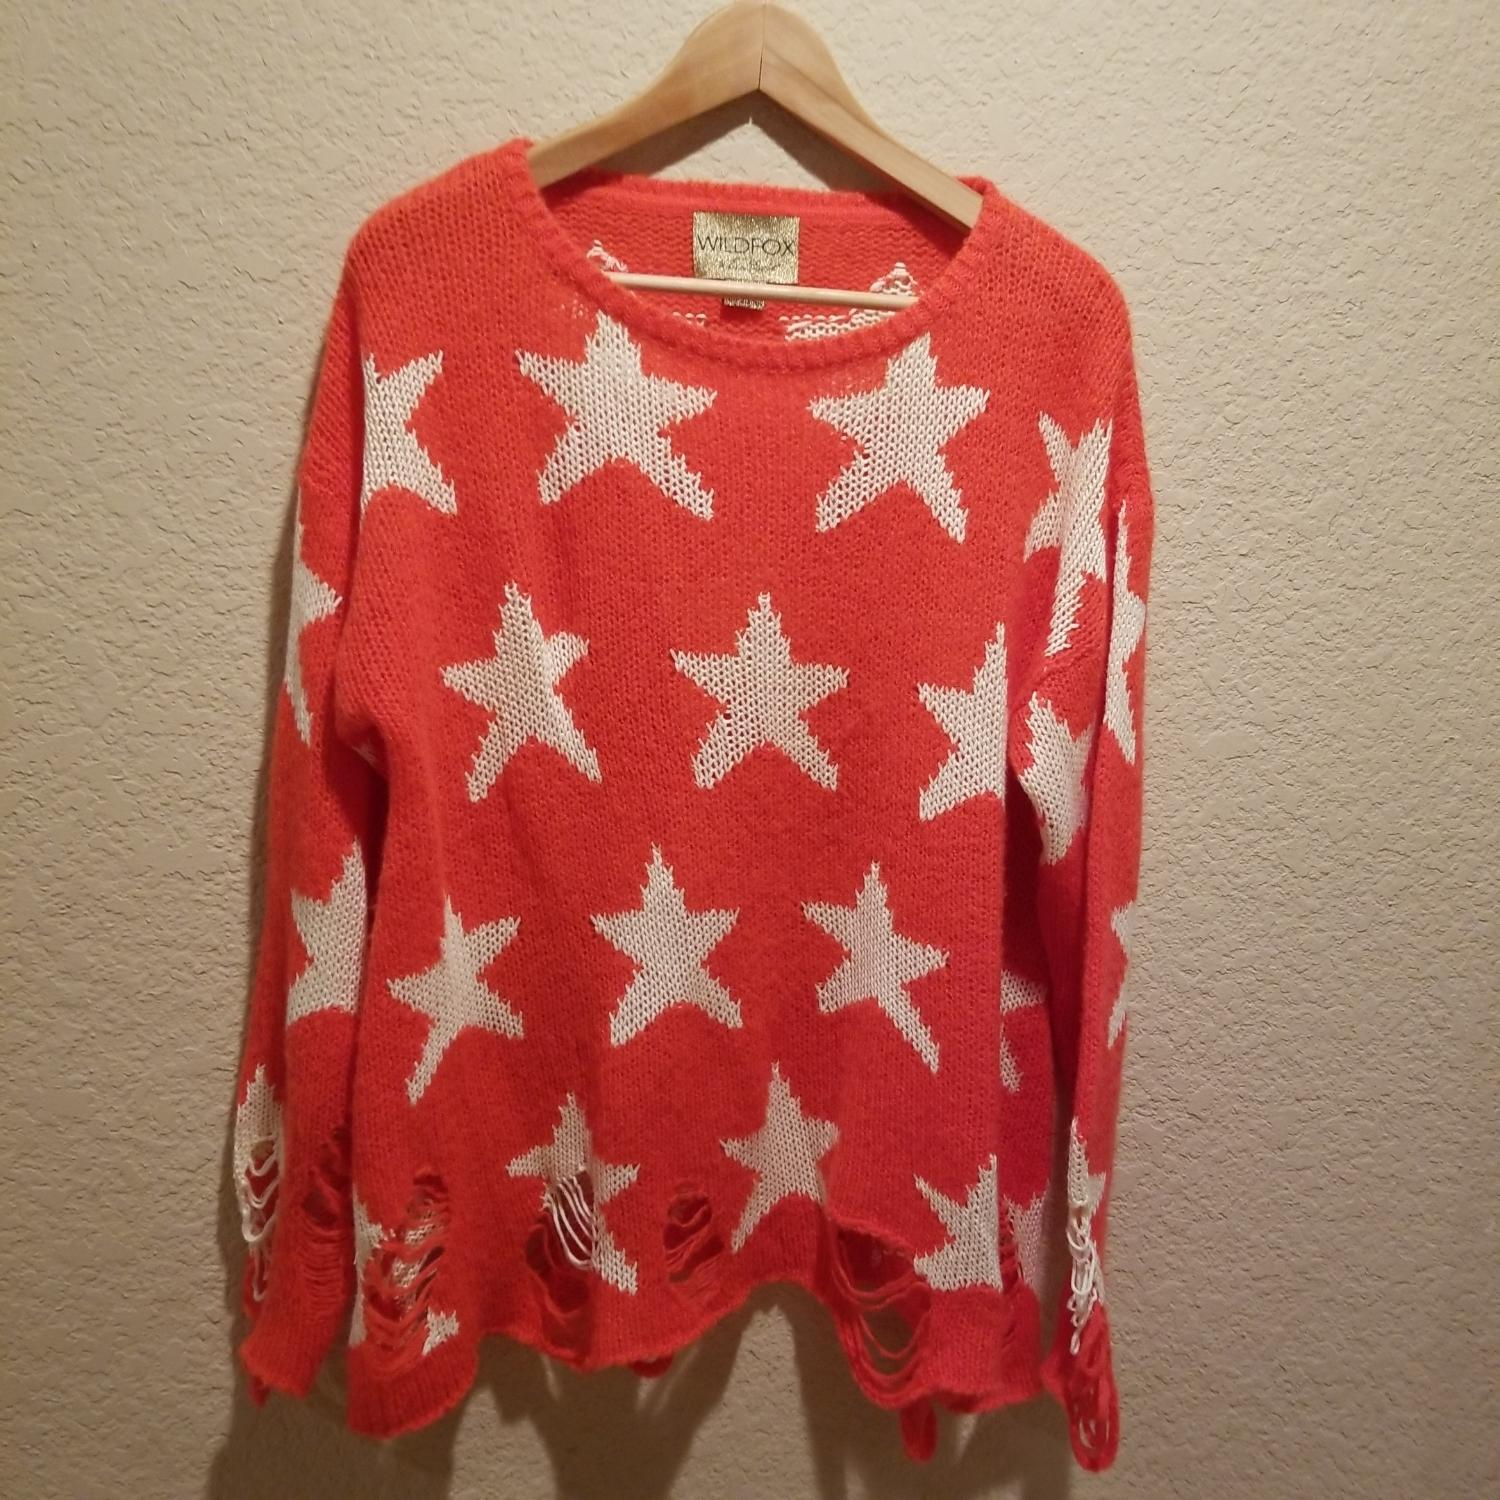 Wildfox Couture White Label Seeing Stars Lennon Sweater in Pink NWT